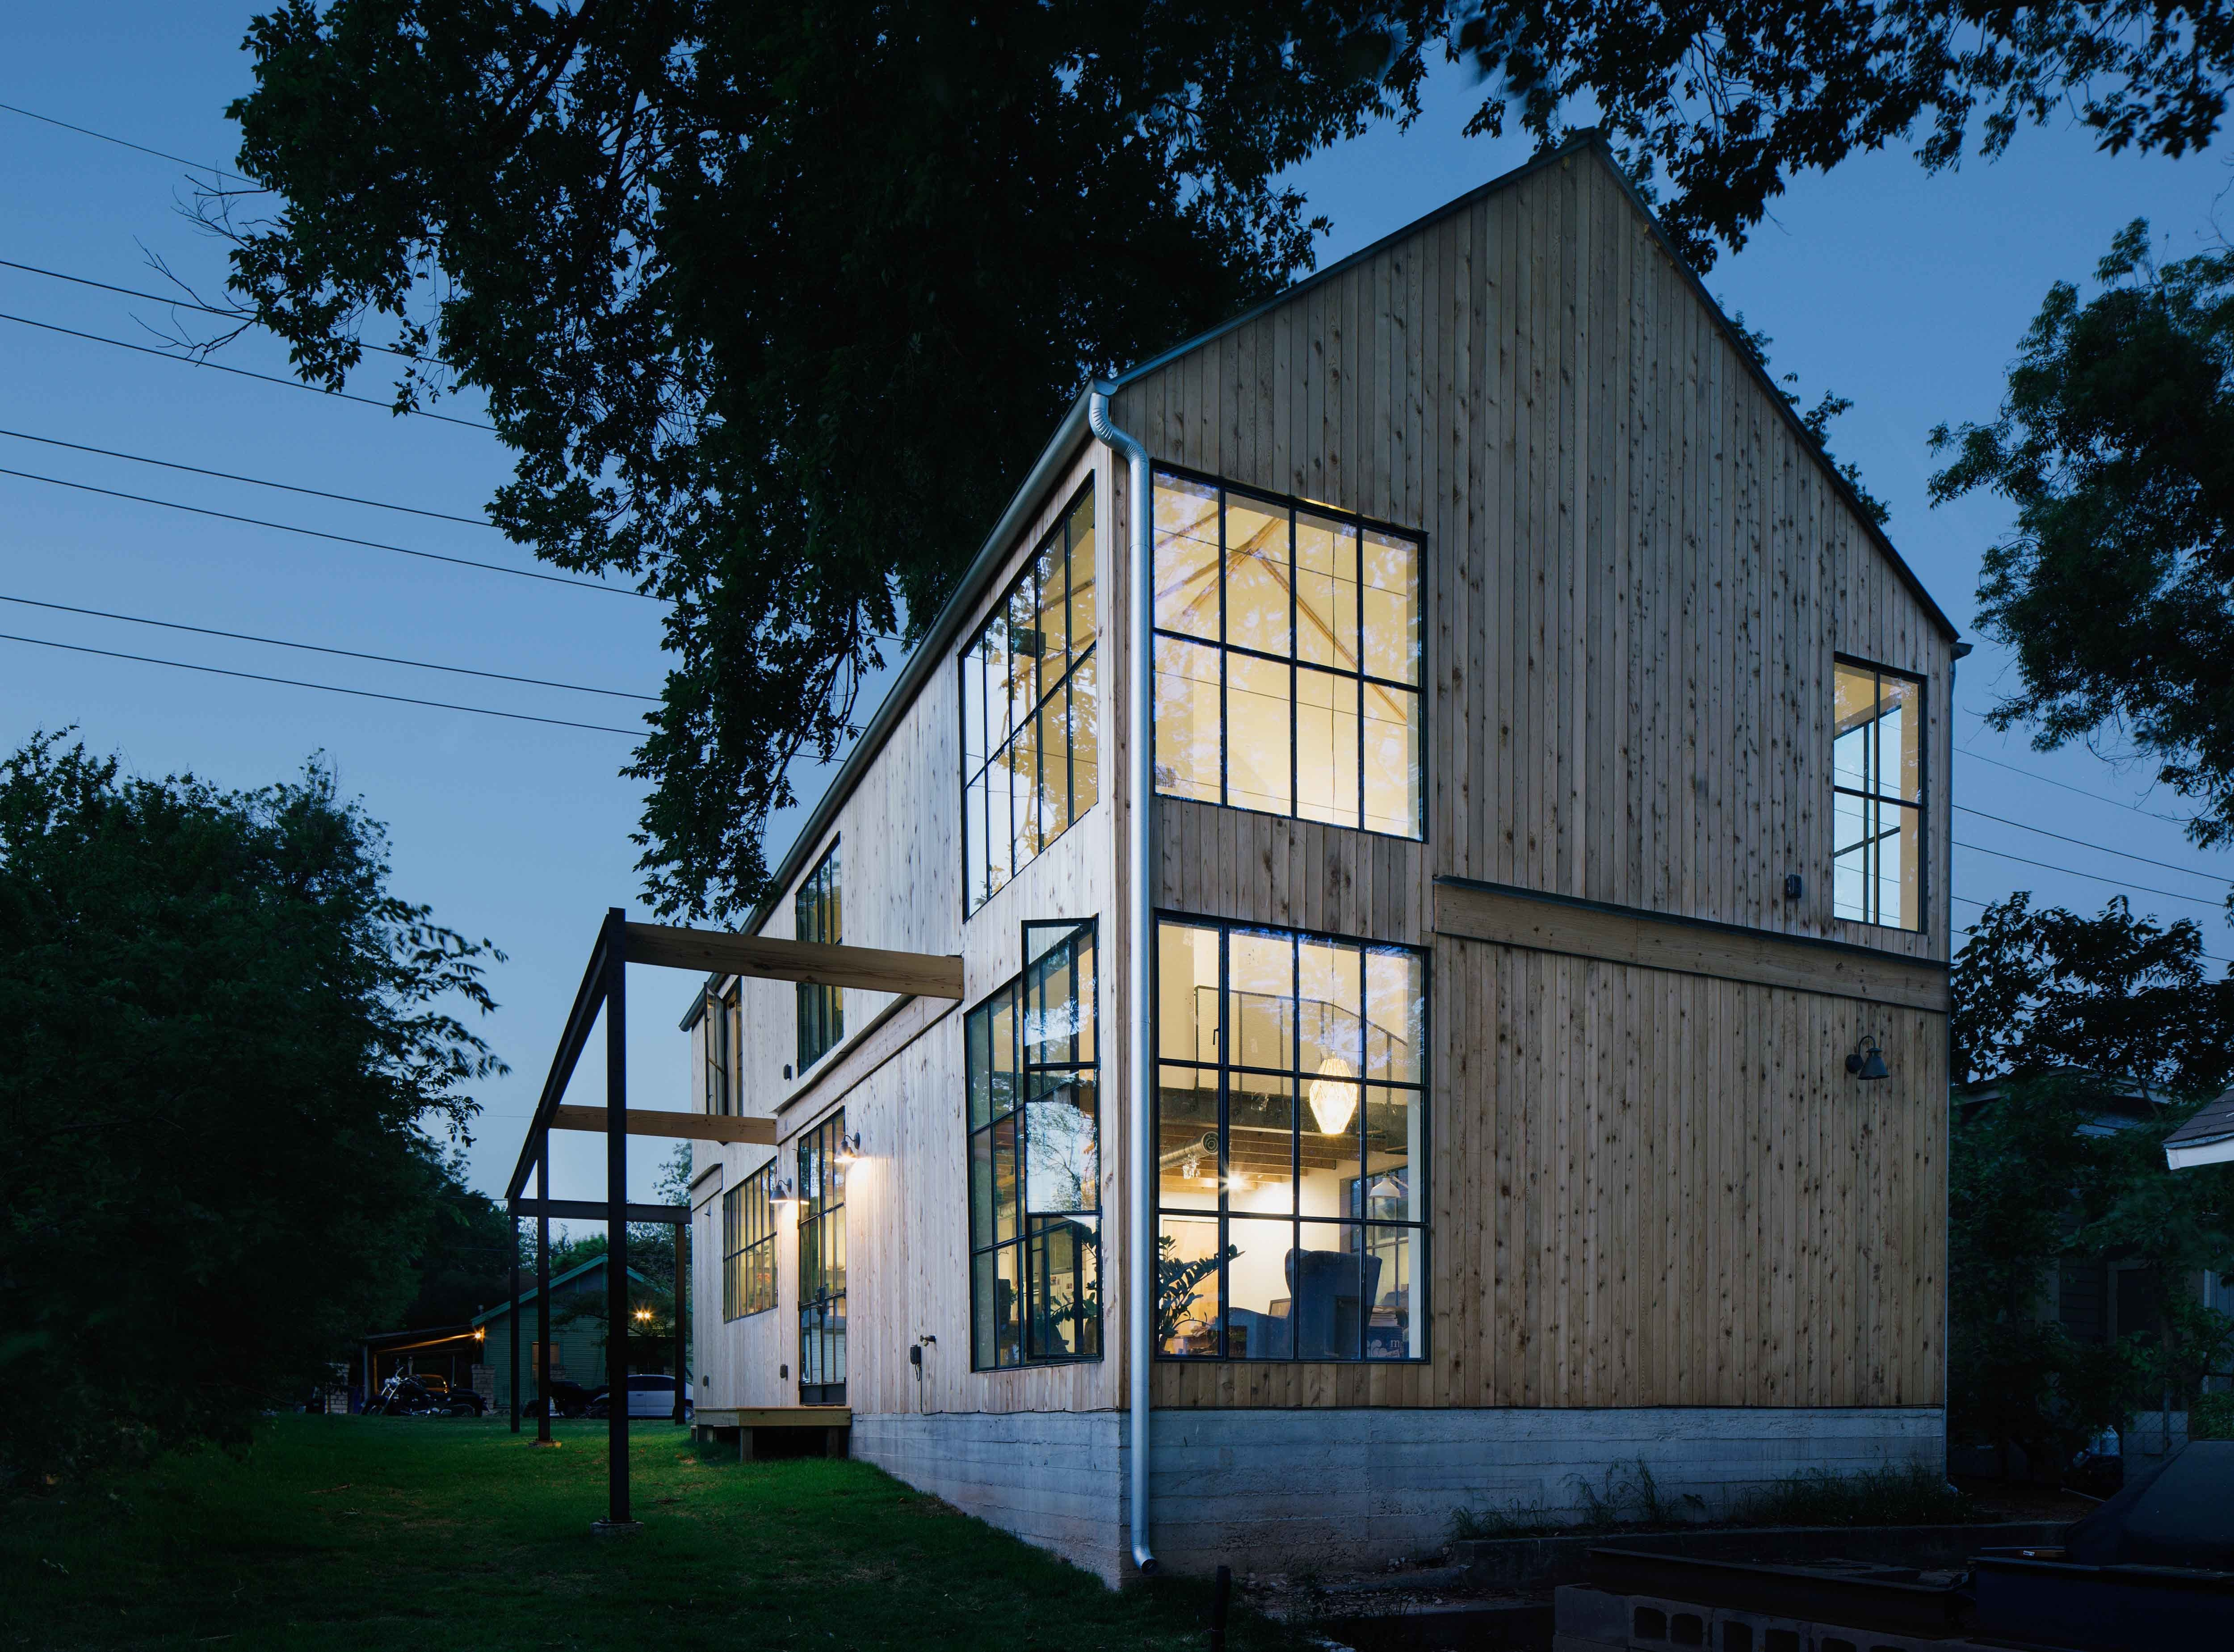 Finishing the facades of houses. We try various materials